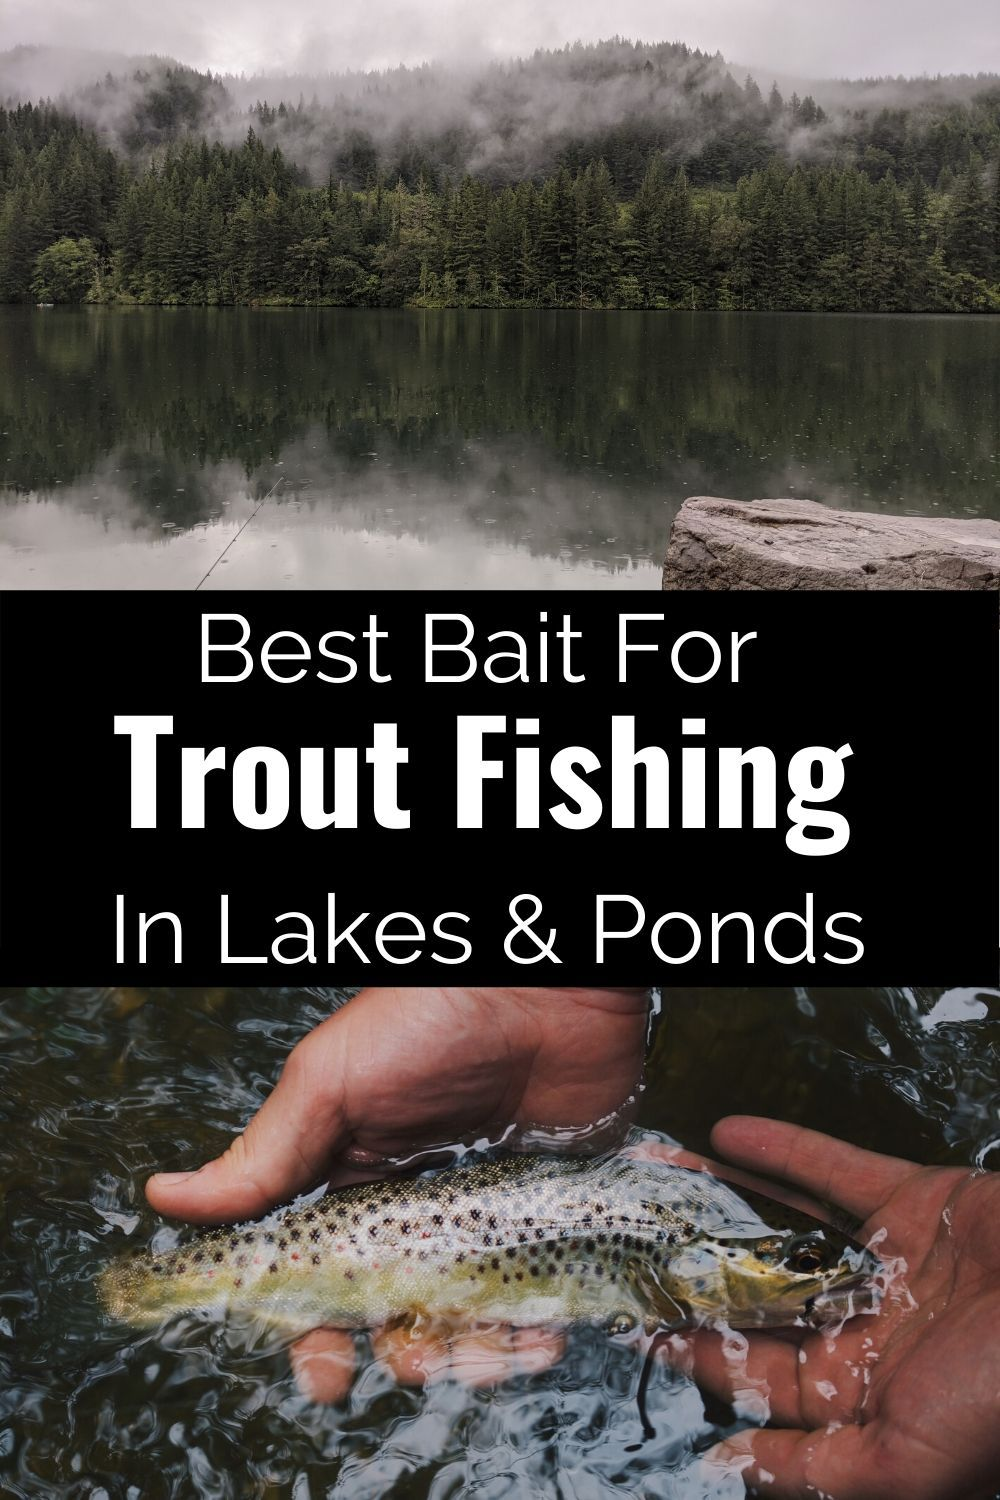 Best Bait For Trout Fishing In Lakes and Ponds in 2020